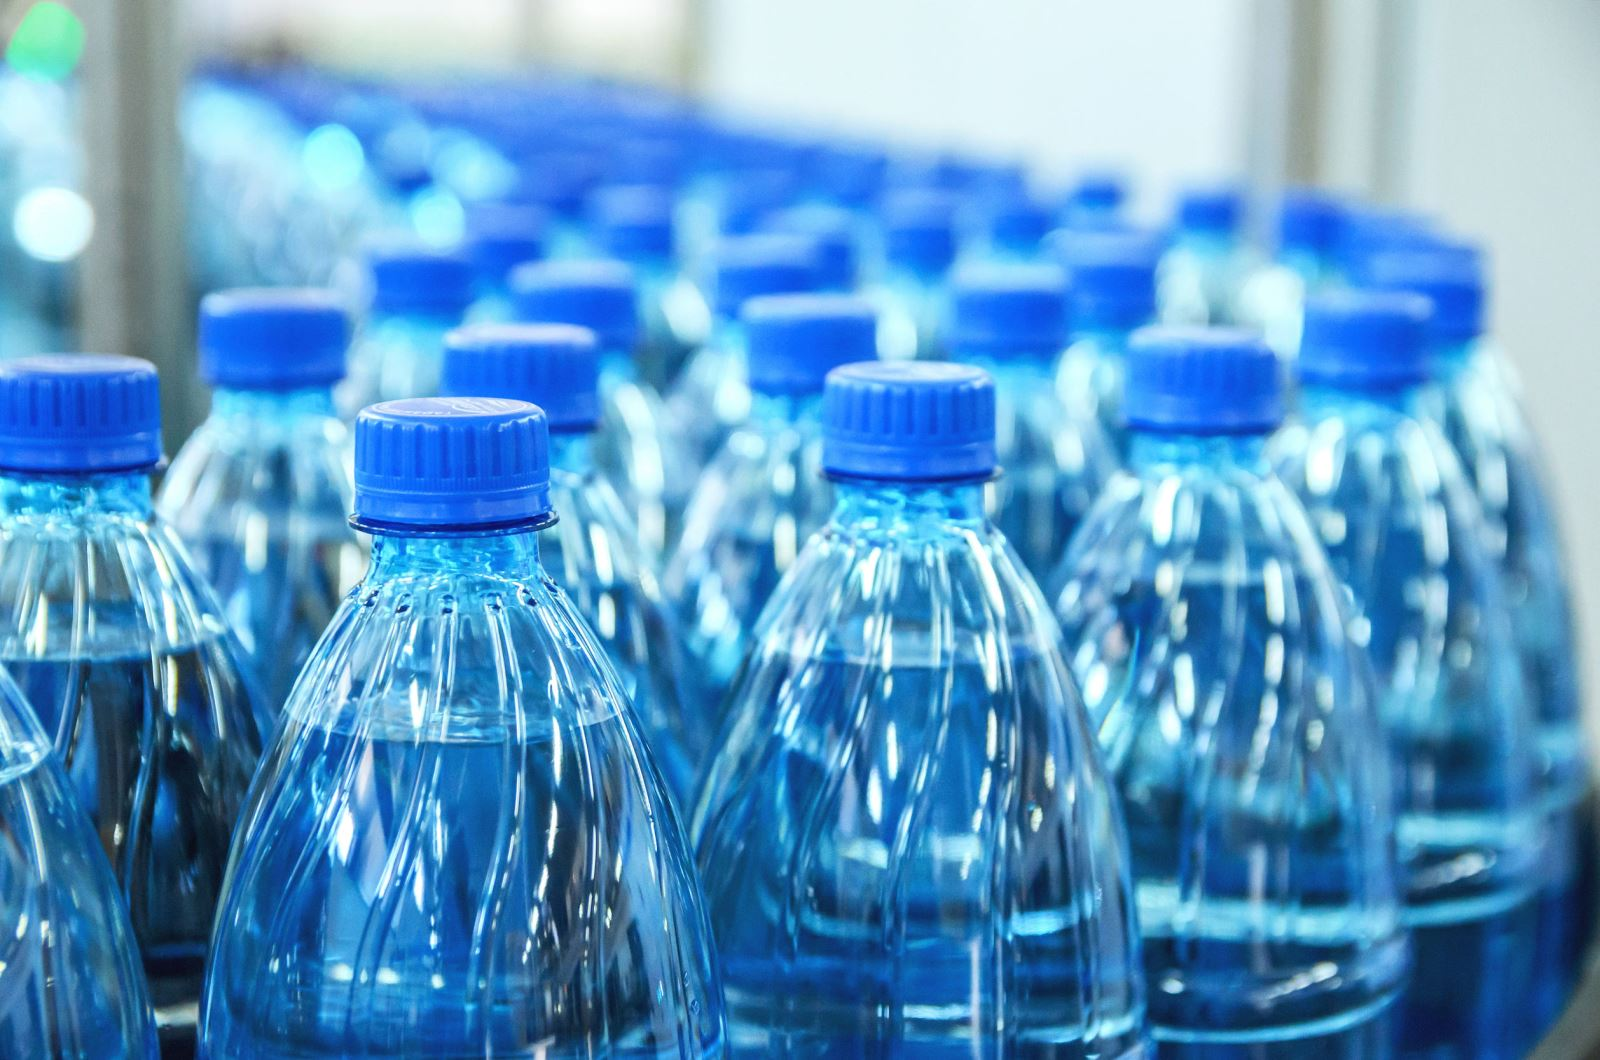 Procedures of requesting for a Food Safety and Hygiene Certificate for places manufacturing and trading in natural mineral water, bottled water in Bac Ninh